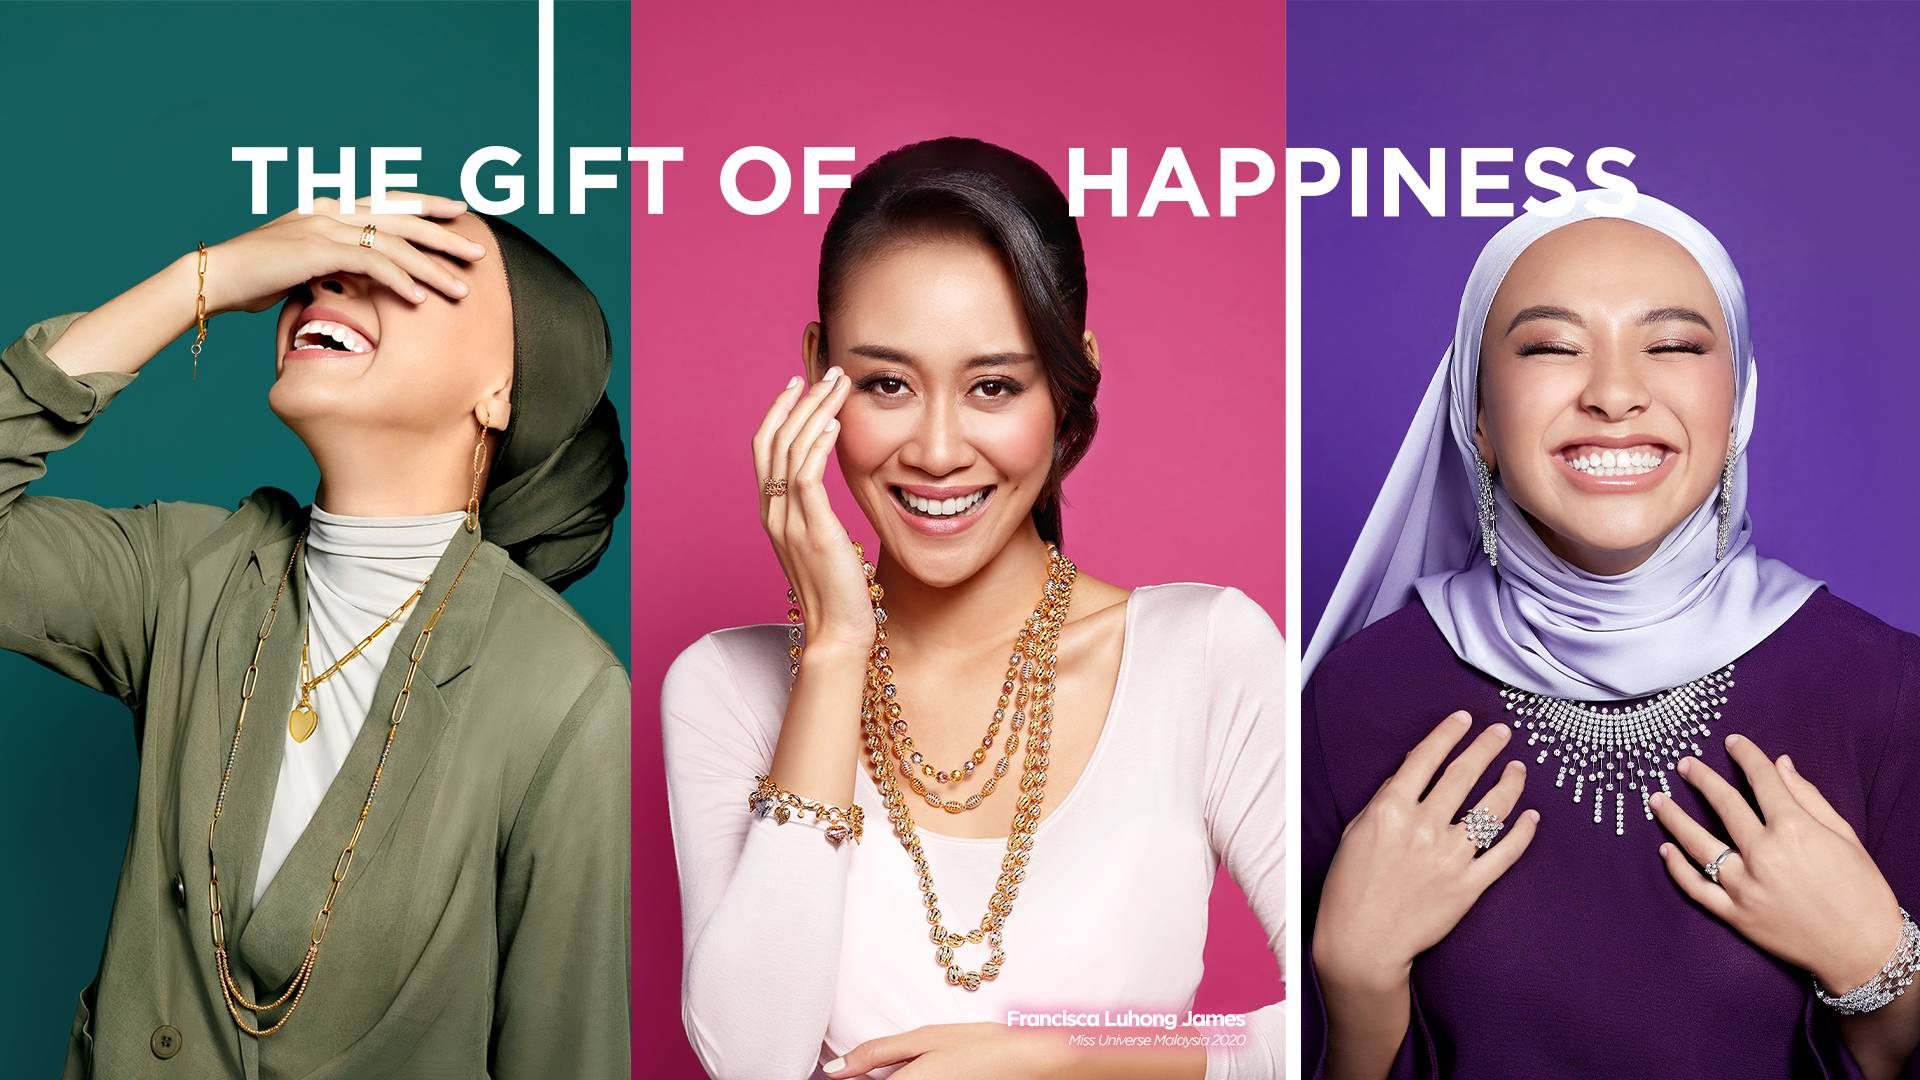 The Gift Of Happiness